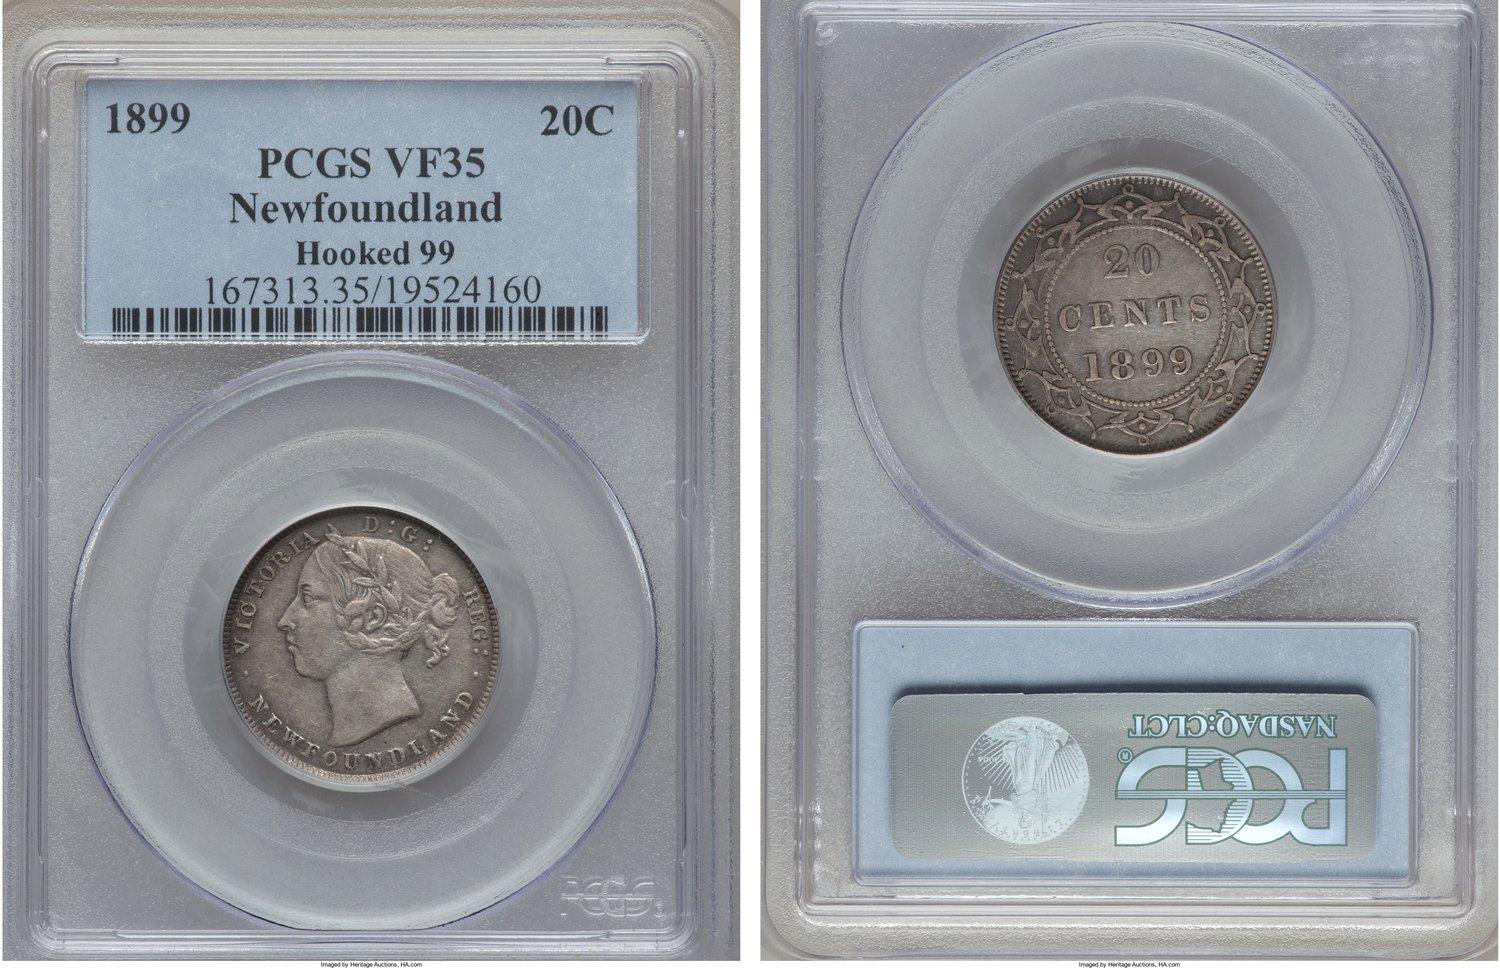 NumisBids Heritage World Coin Auctions Monthly Auction 271718 Lot 33262 Canada Newfoundland Victoria Hooked 99 20 Cents 1899 VF35